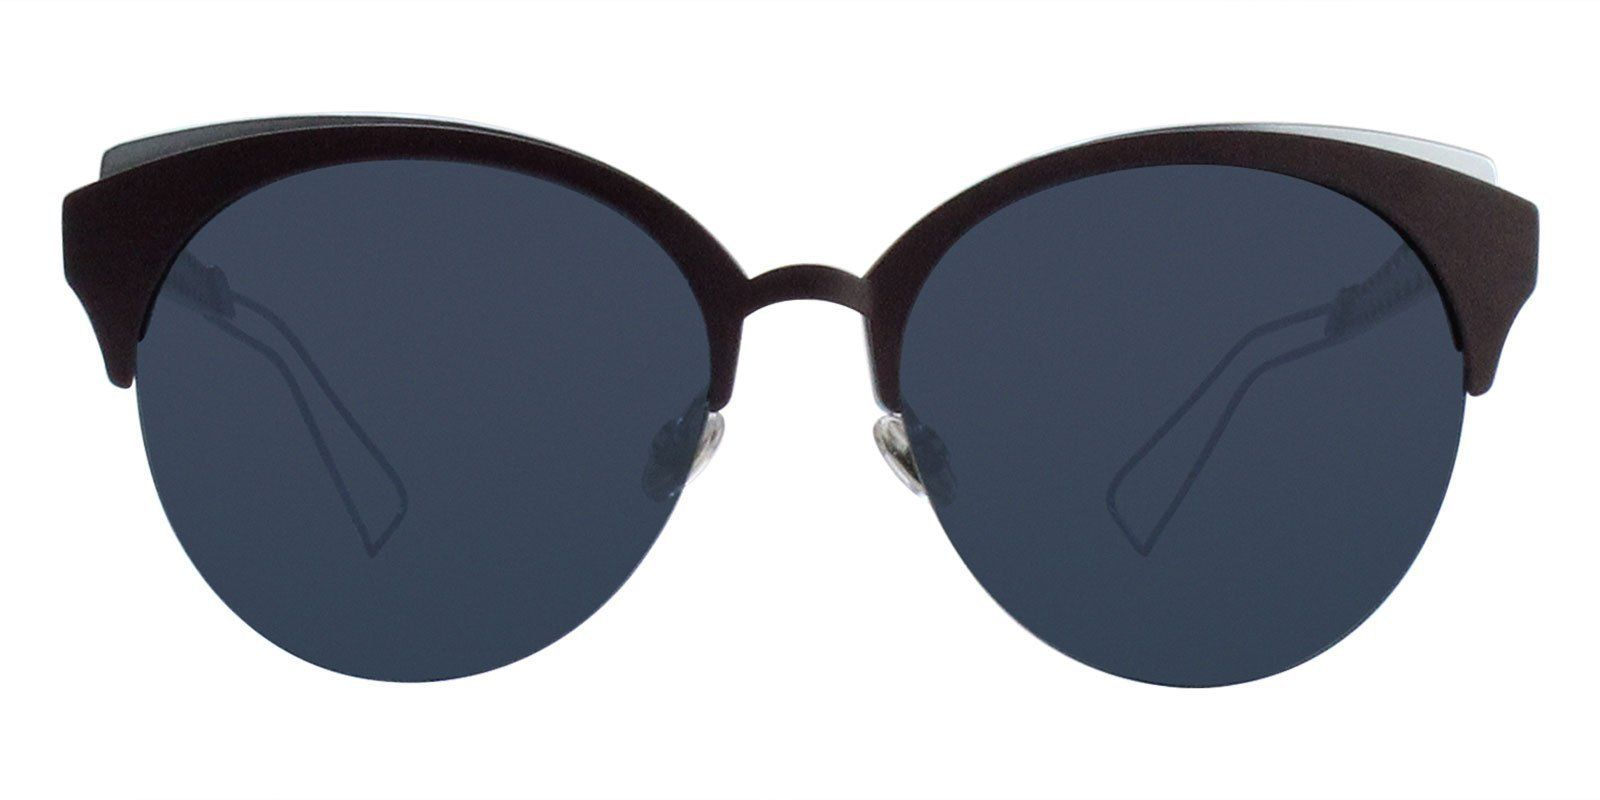 197887d4f02 Dior Nebula Gold   Blue Lens Sunglasses in 2018